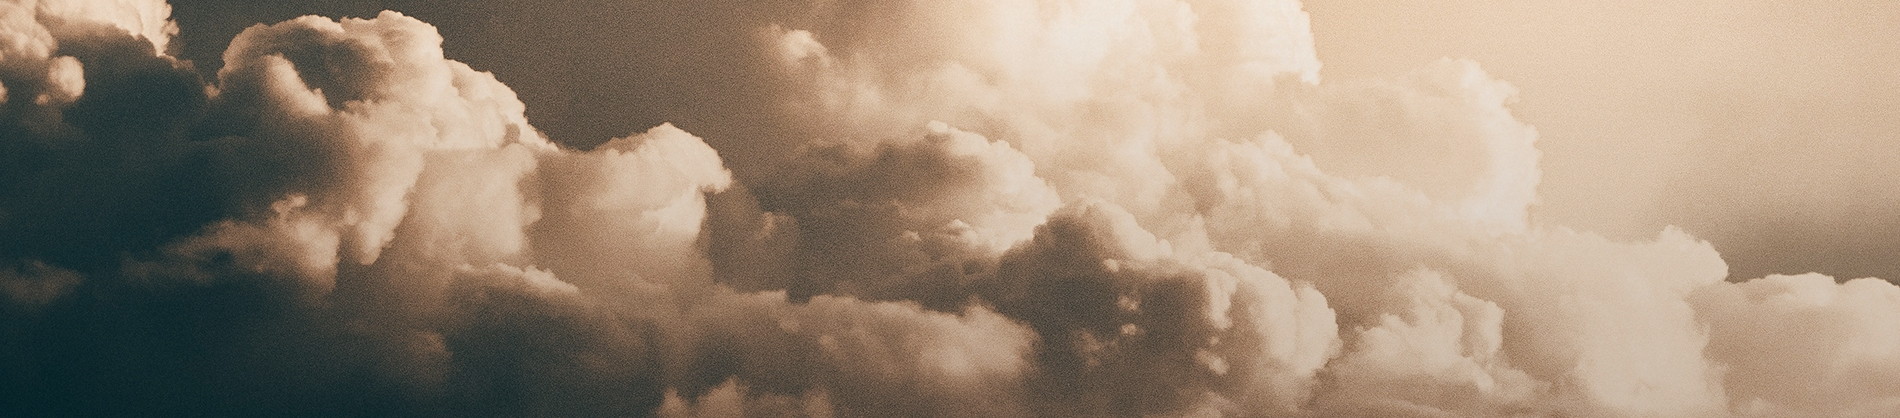 Sepia filtered clouds